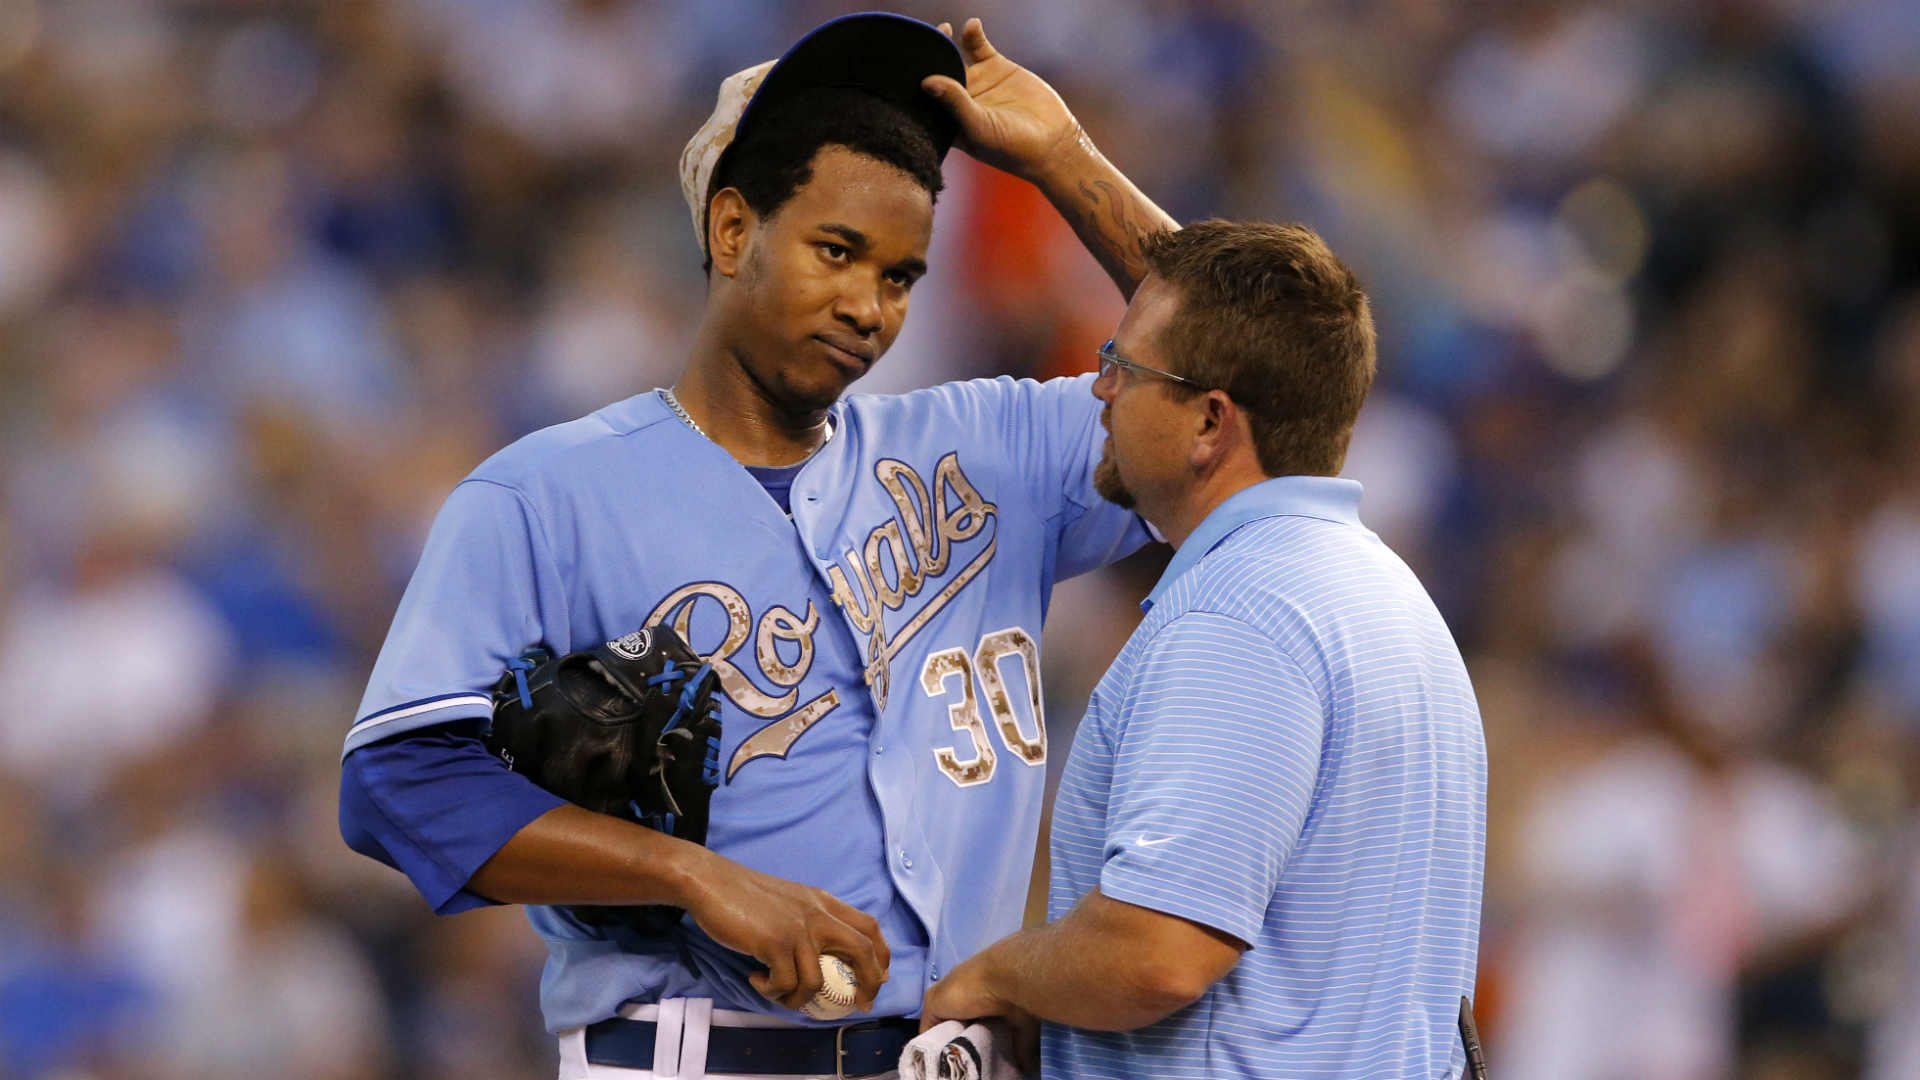 Injury Report: MRI brings good news for Royals' Yordano Ventura